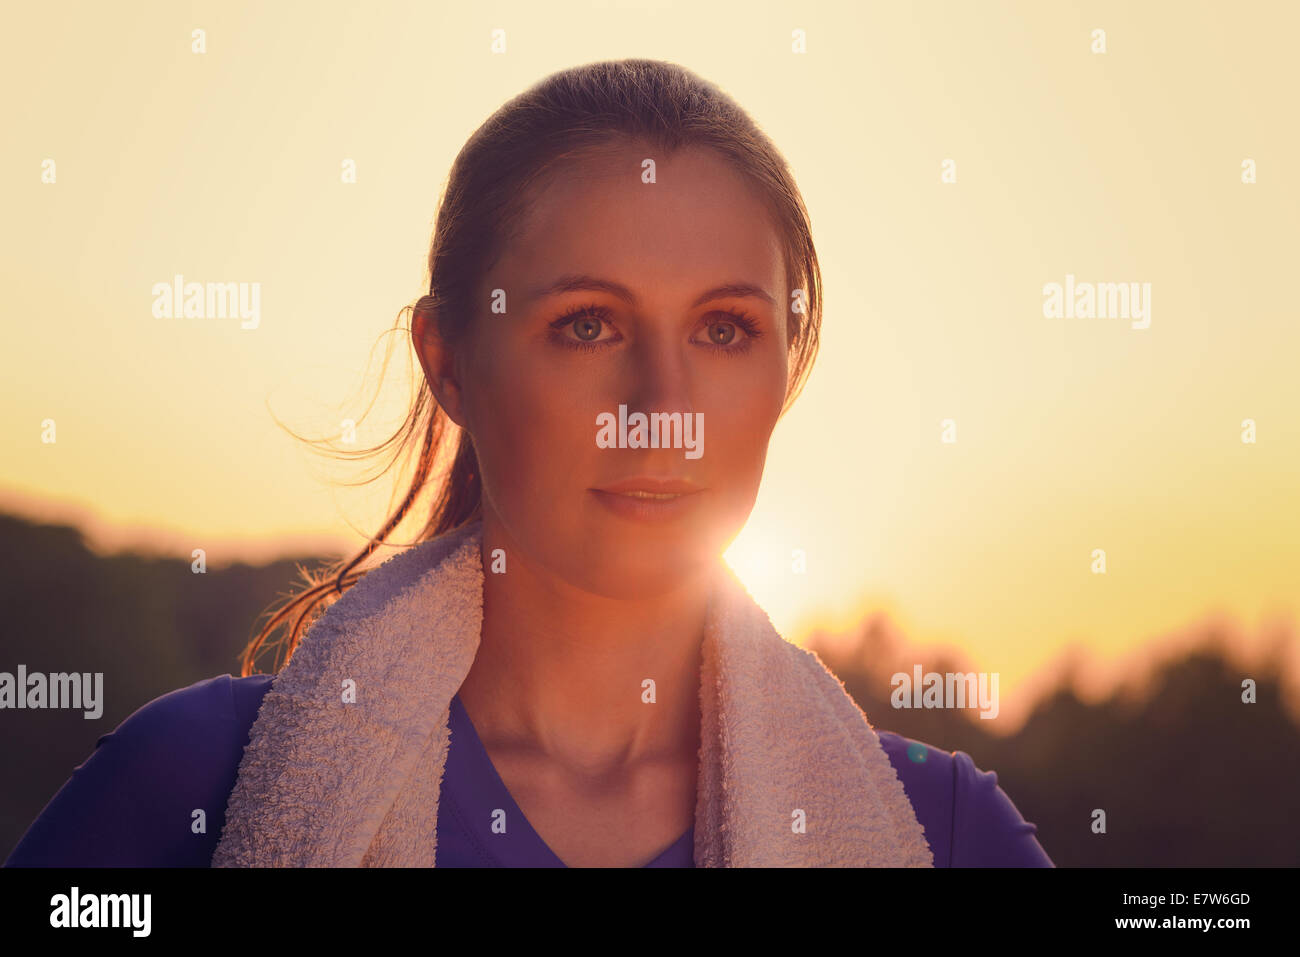 Attractive woman outdoors at sunset backlit by the orange glow of the sun causing a flare around her face - Stock Image